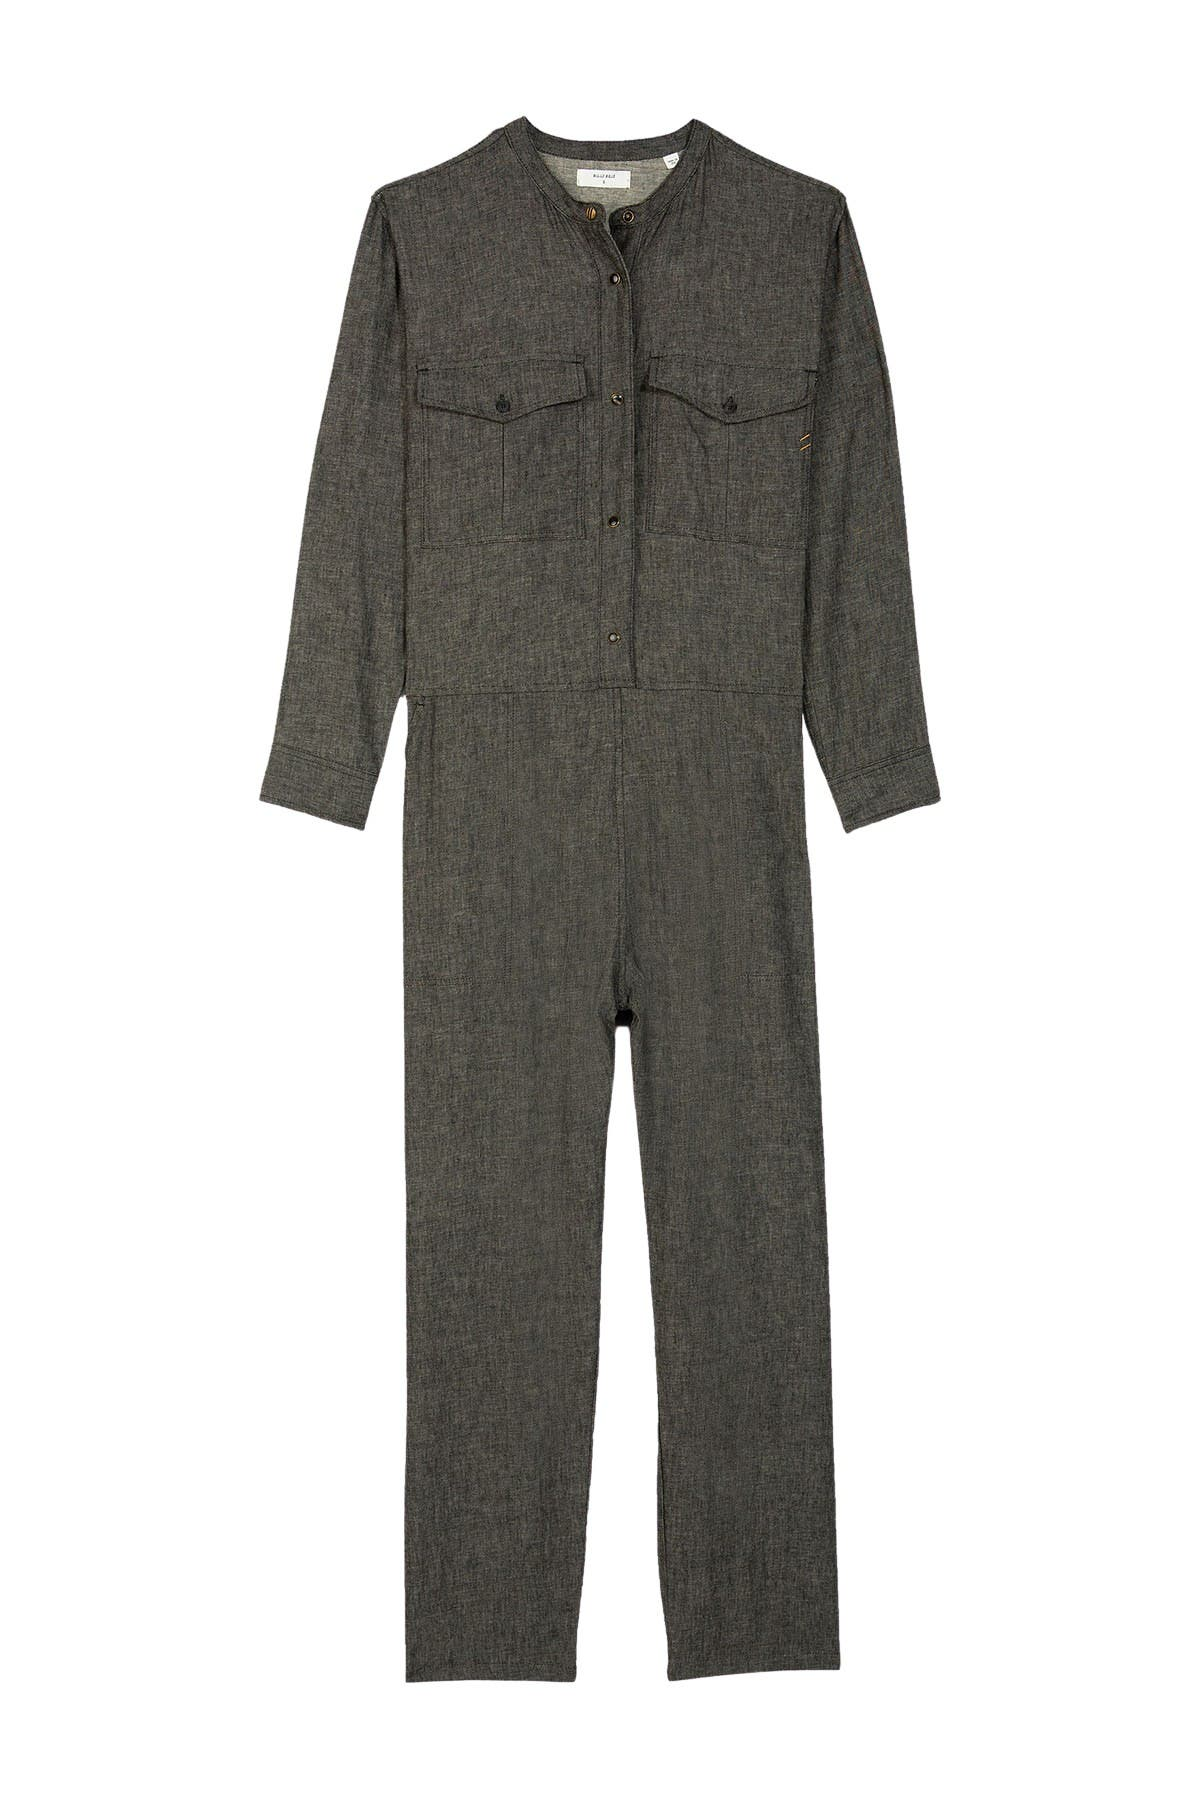 Image of Billy Reid Chambray Jumpsuit